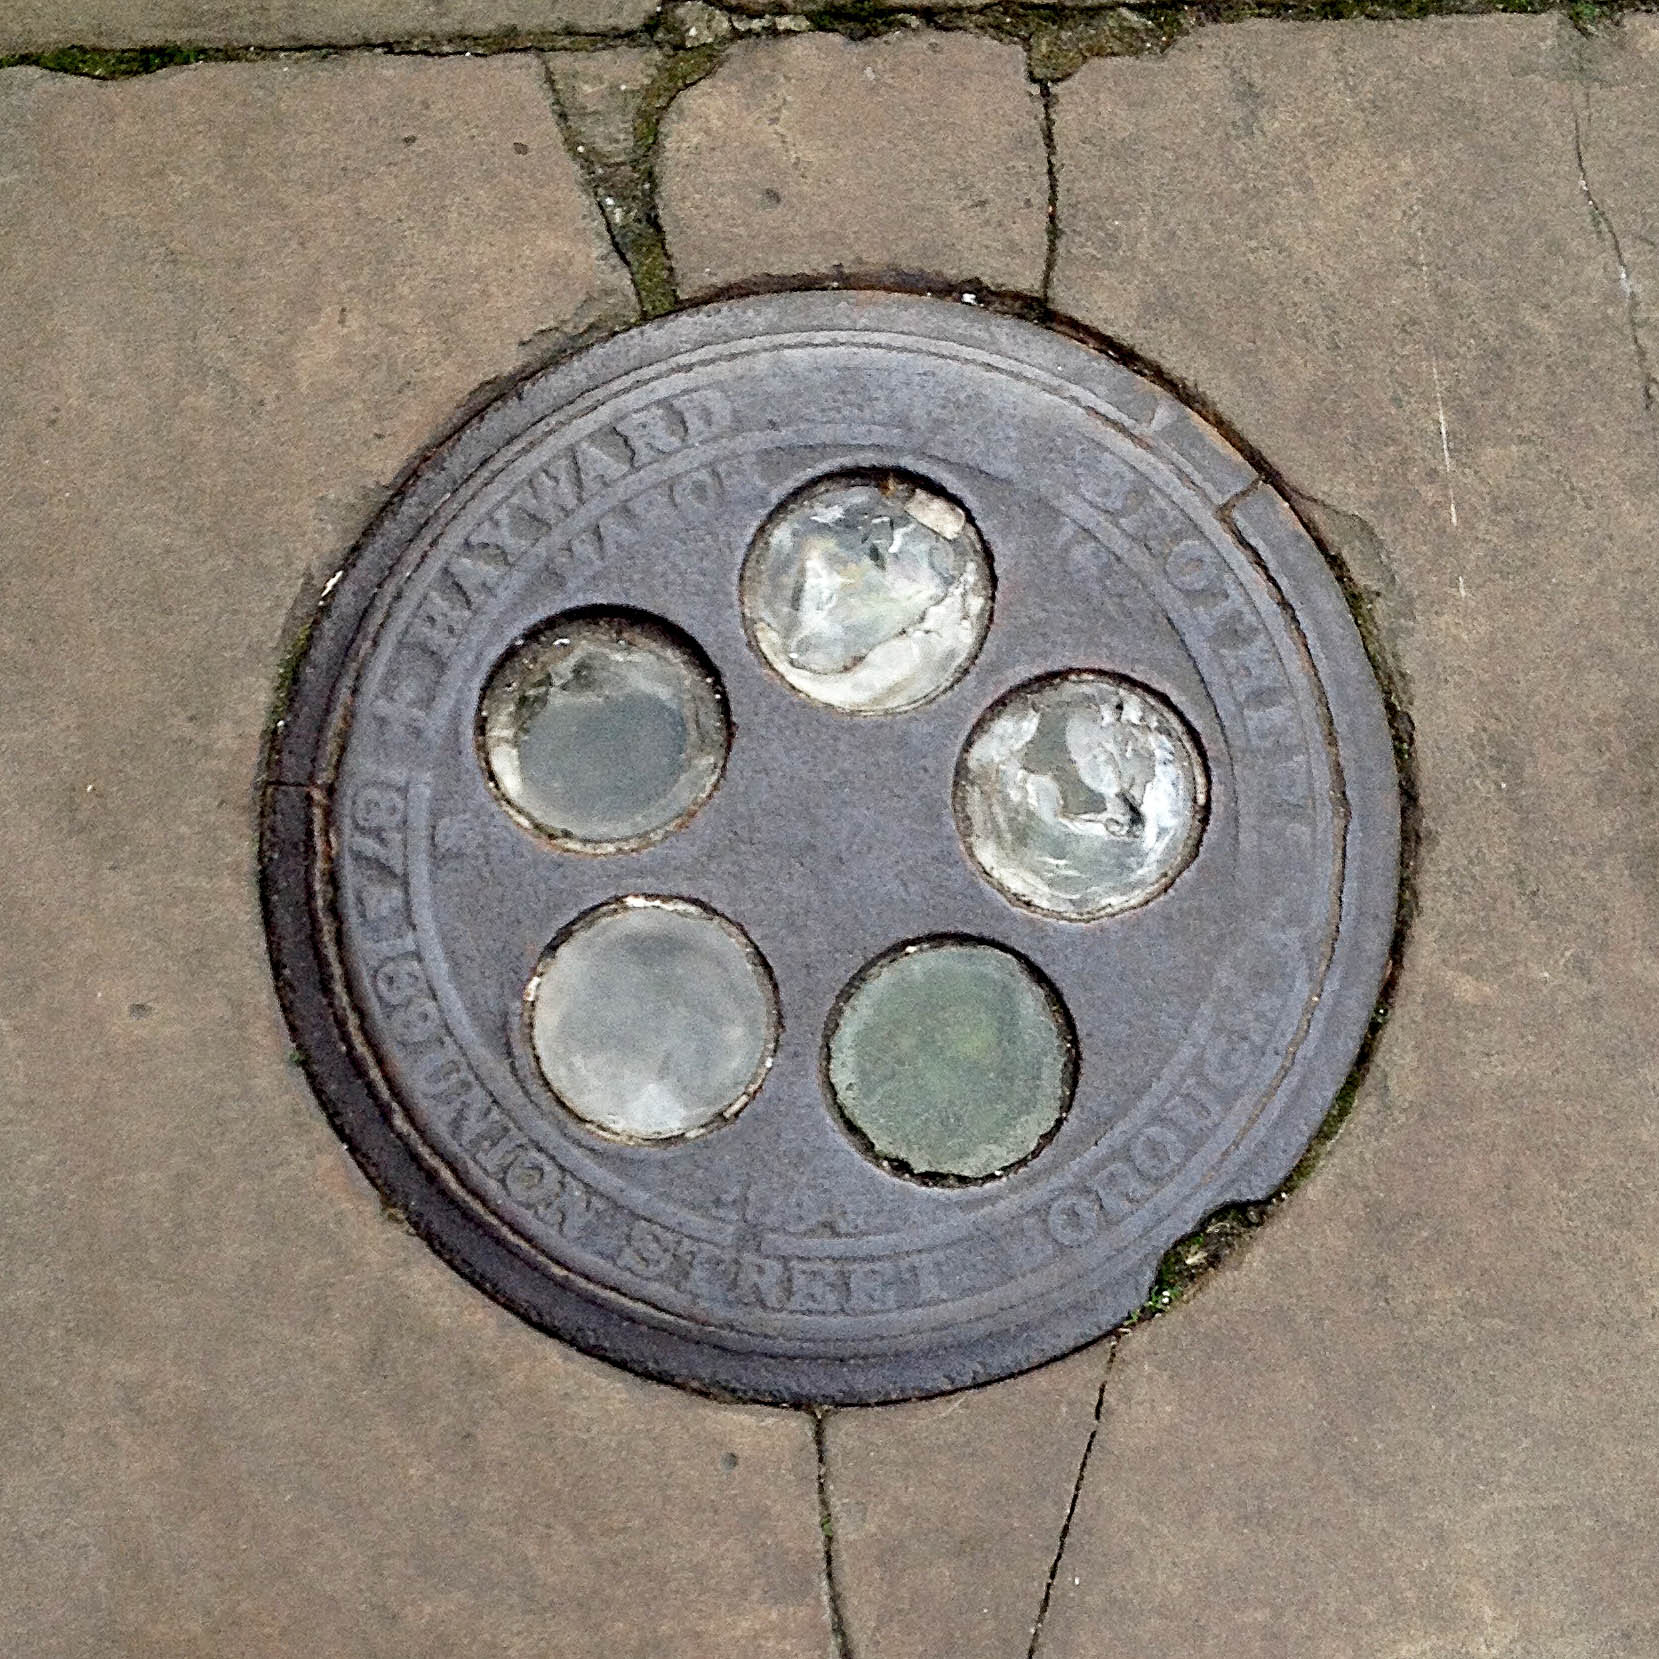 Manhole Cover, London - Cast iron - surround inscribed with Hayward Brothers 187 & 189 Union Street Borough - Inner, five glass circular inserts